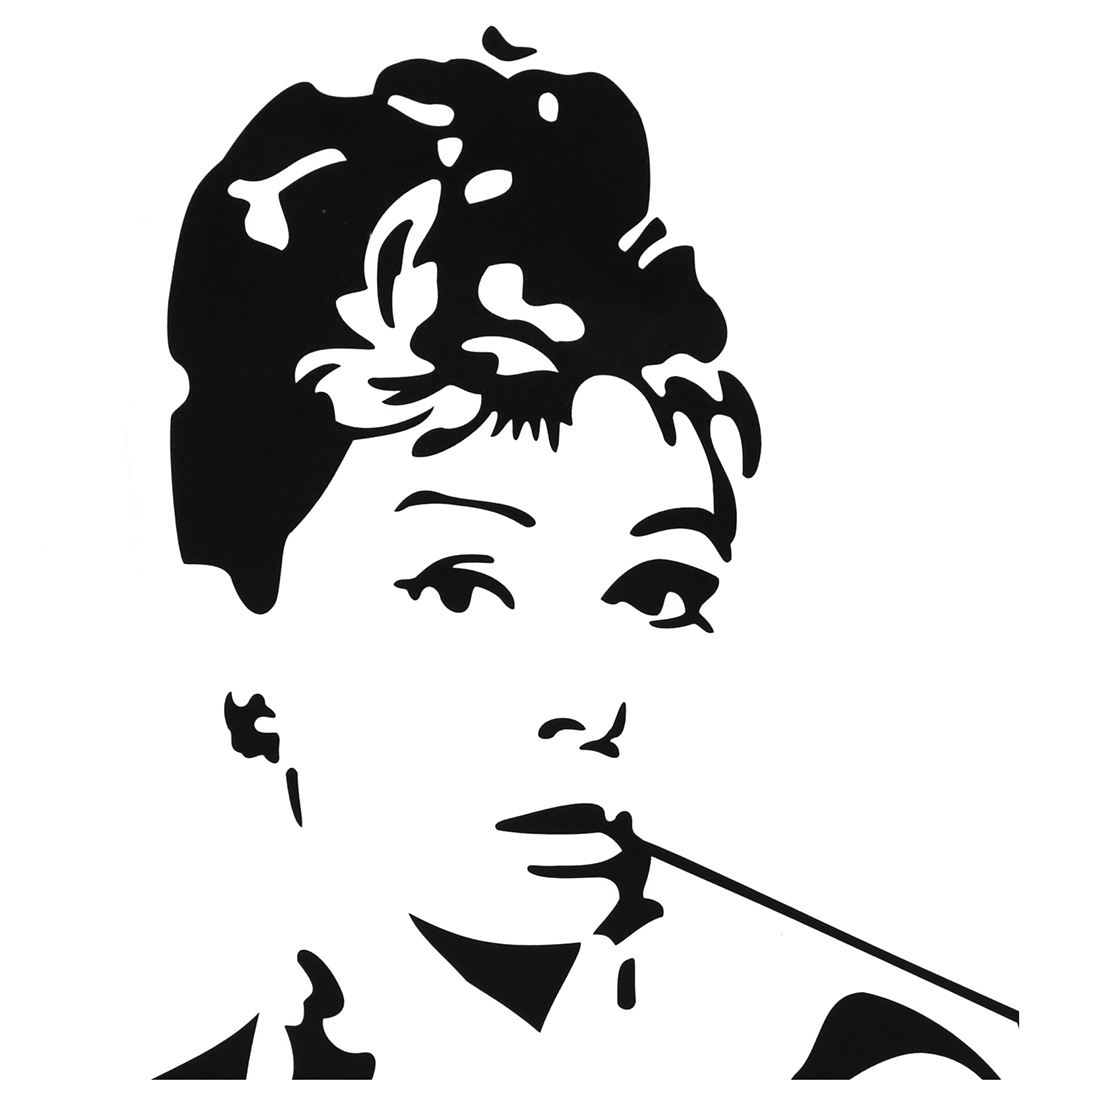 Audrey Hepburn Wall Decor Compare Prices On Wall Stickers Audrey Hepburn Online Shopping